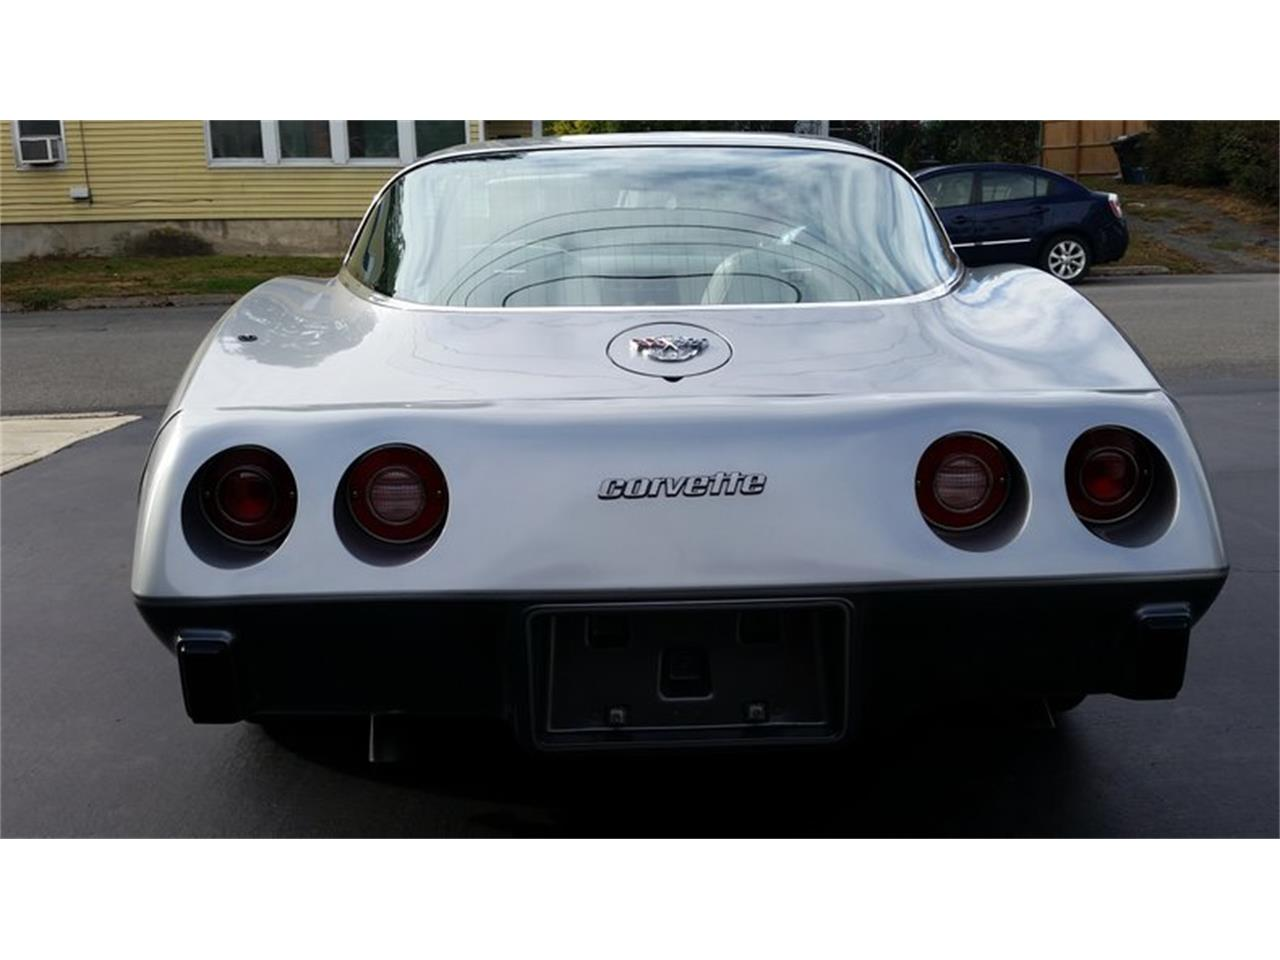 Large Picture of '78 Chevrolet Corvette located in Saratoga Springs New York Auction Vehicle Offered by Saratoga Auto Auction - R2C9